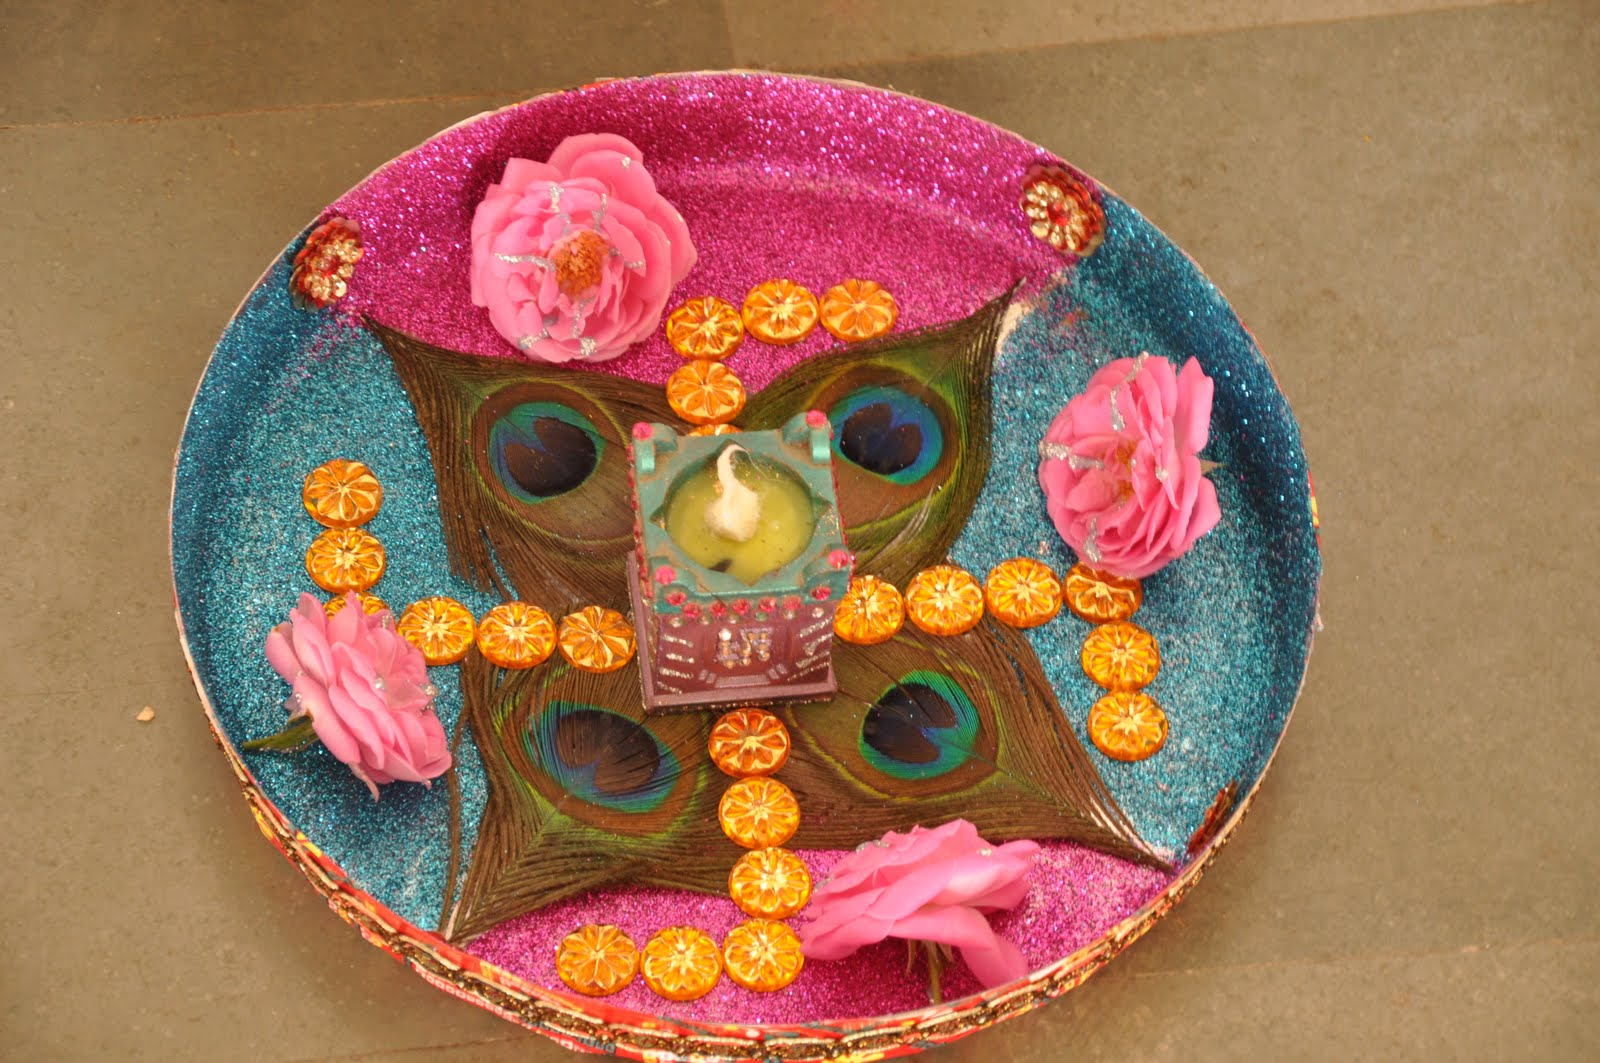 Mammy bachcha aarati thali competition mammy bachcha for Aarti thali decoration competition